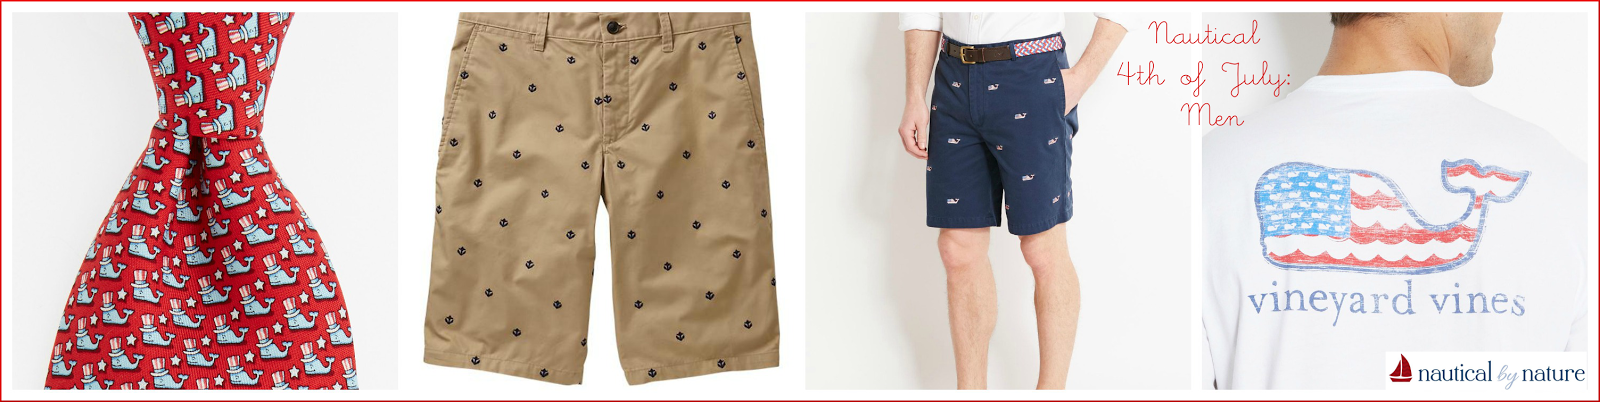 Nautical by Nature | 4th of July: Men